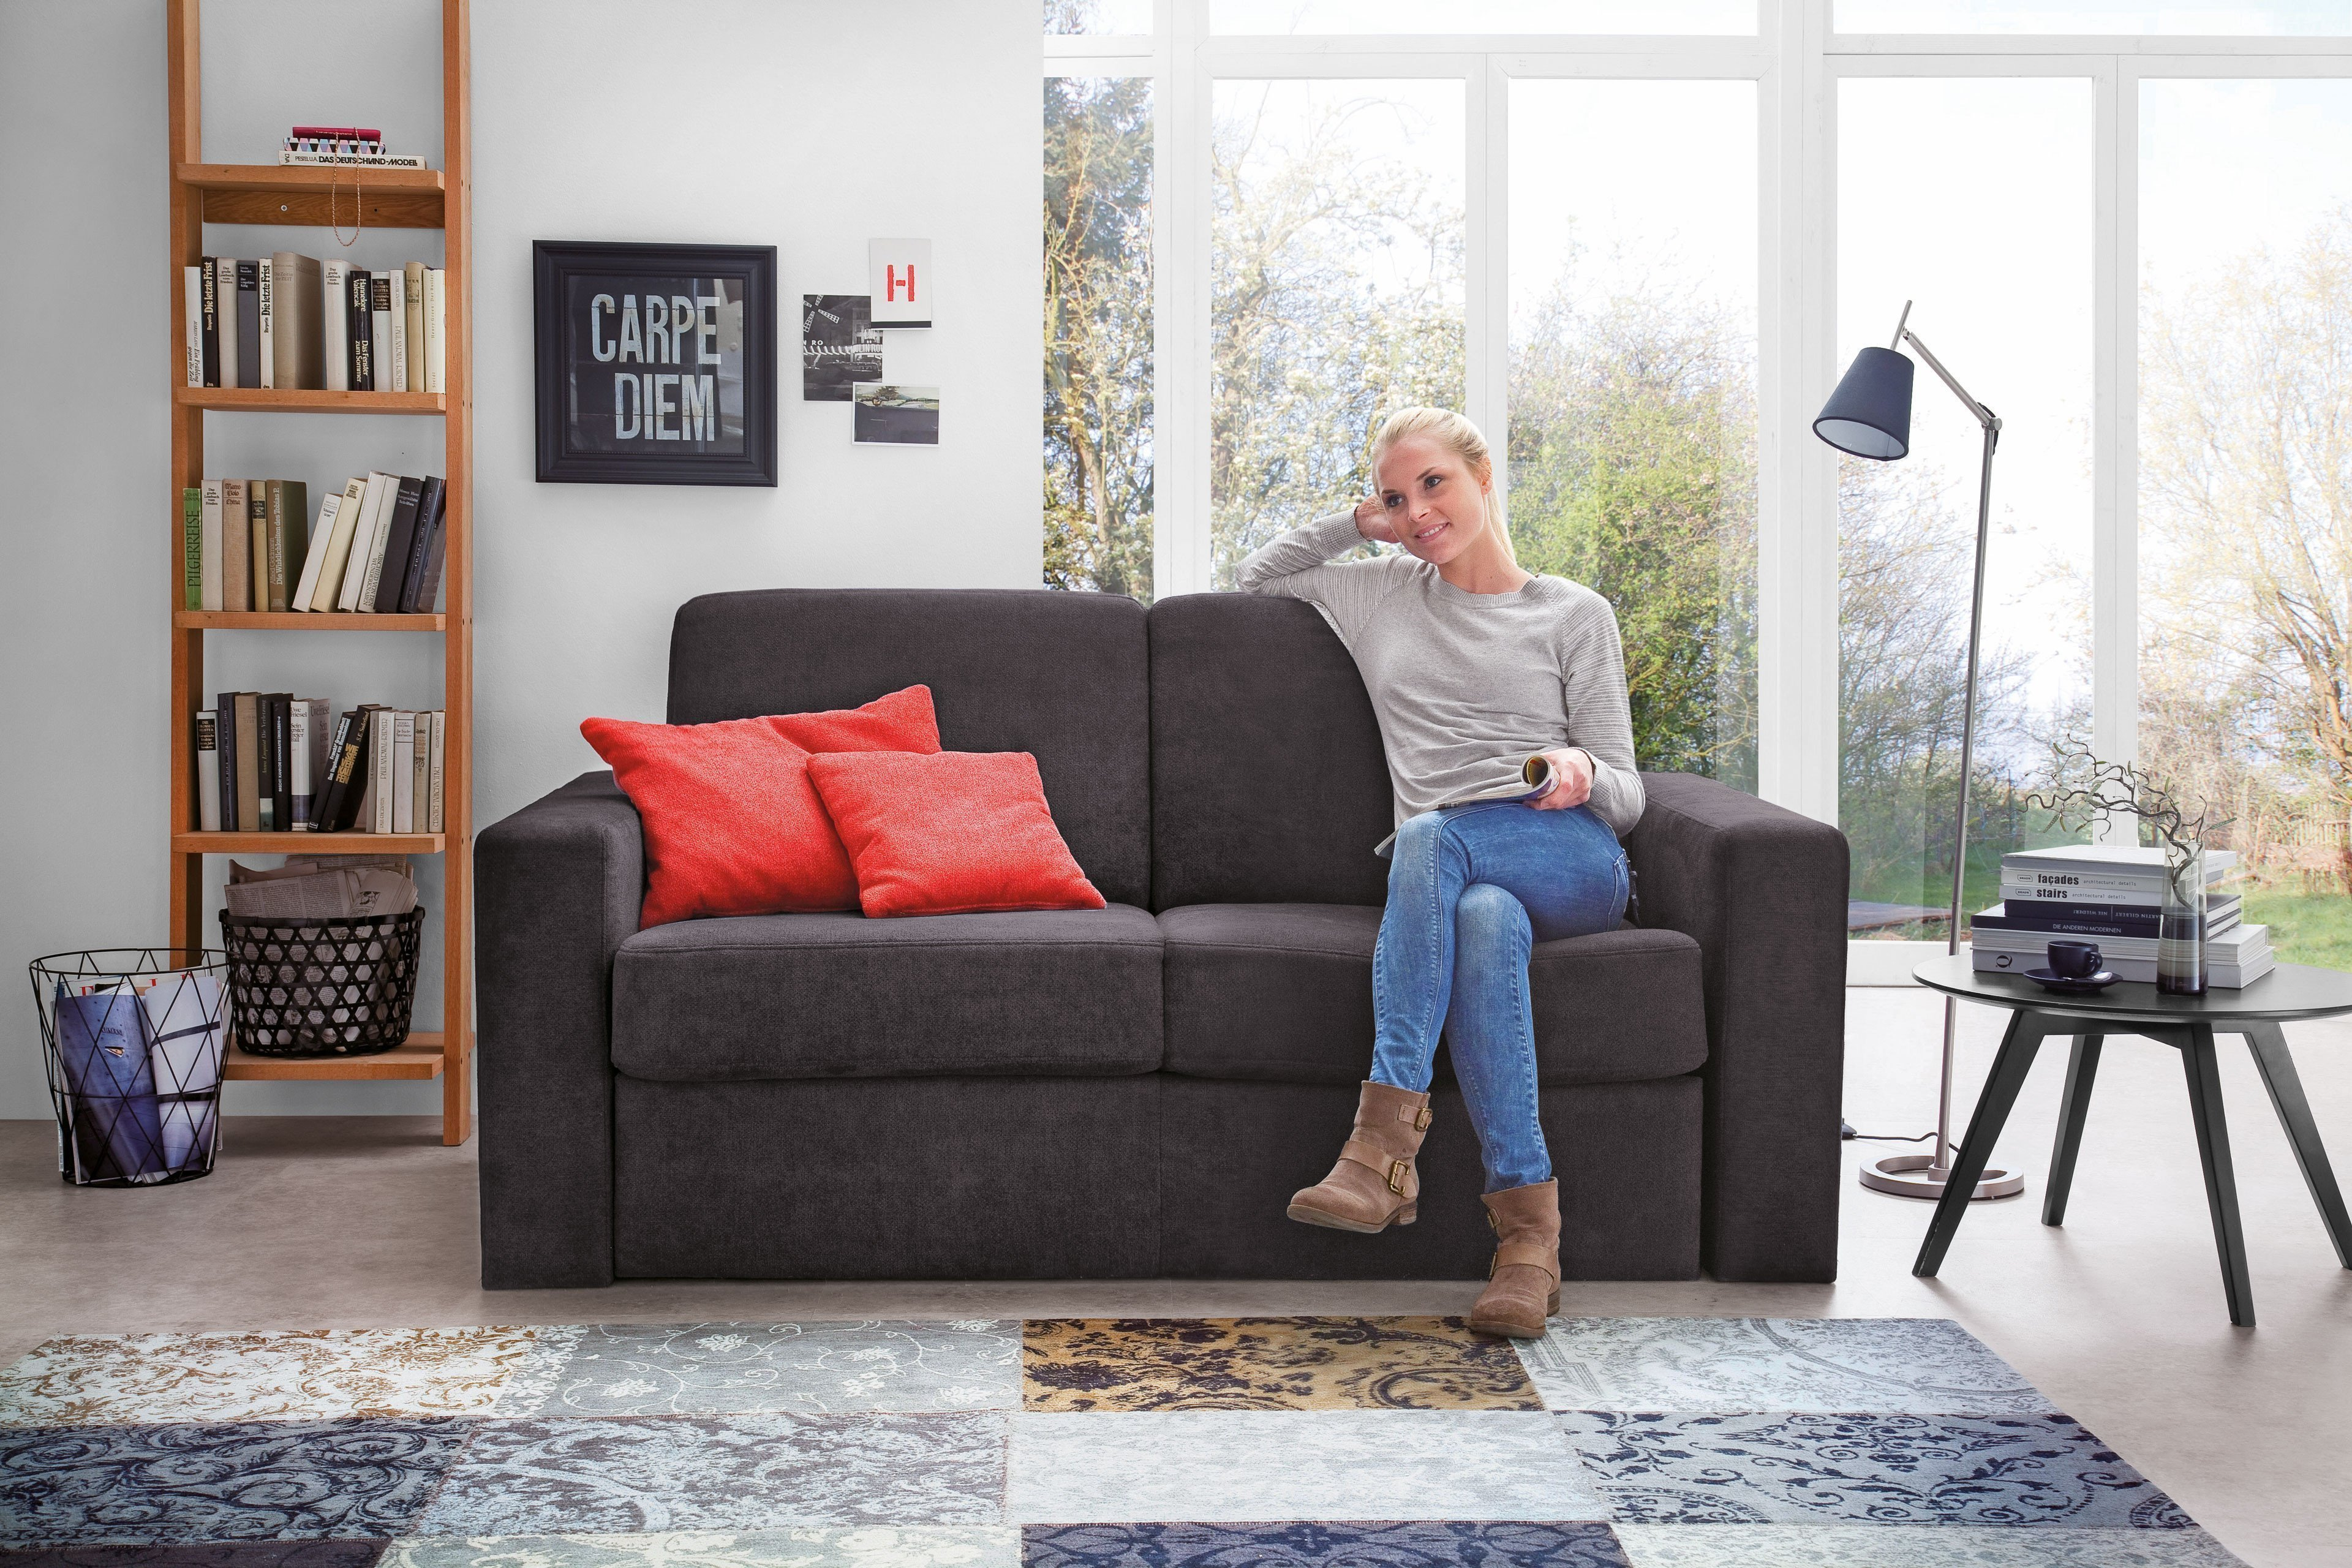 easy sleep von poco schlafsofa in anthrazit m bel letz ihr online shop. Black Bedroom Furniture Sets. Home Design Ideas